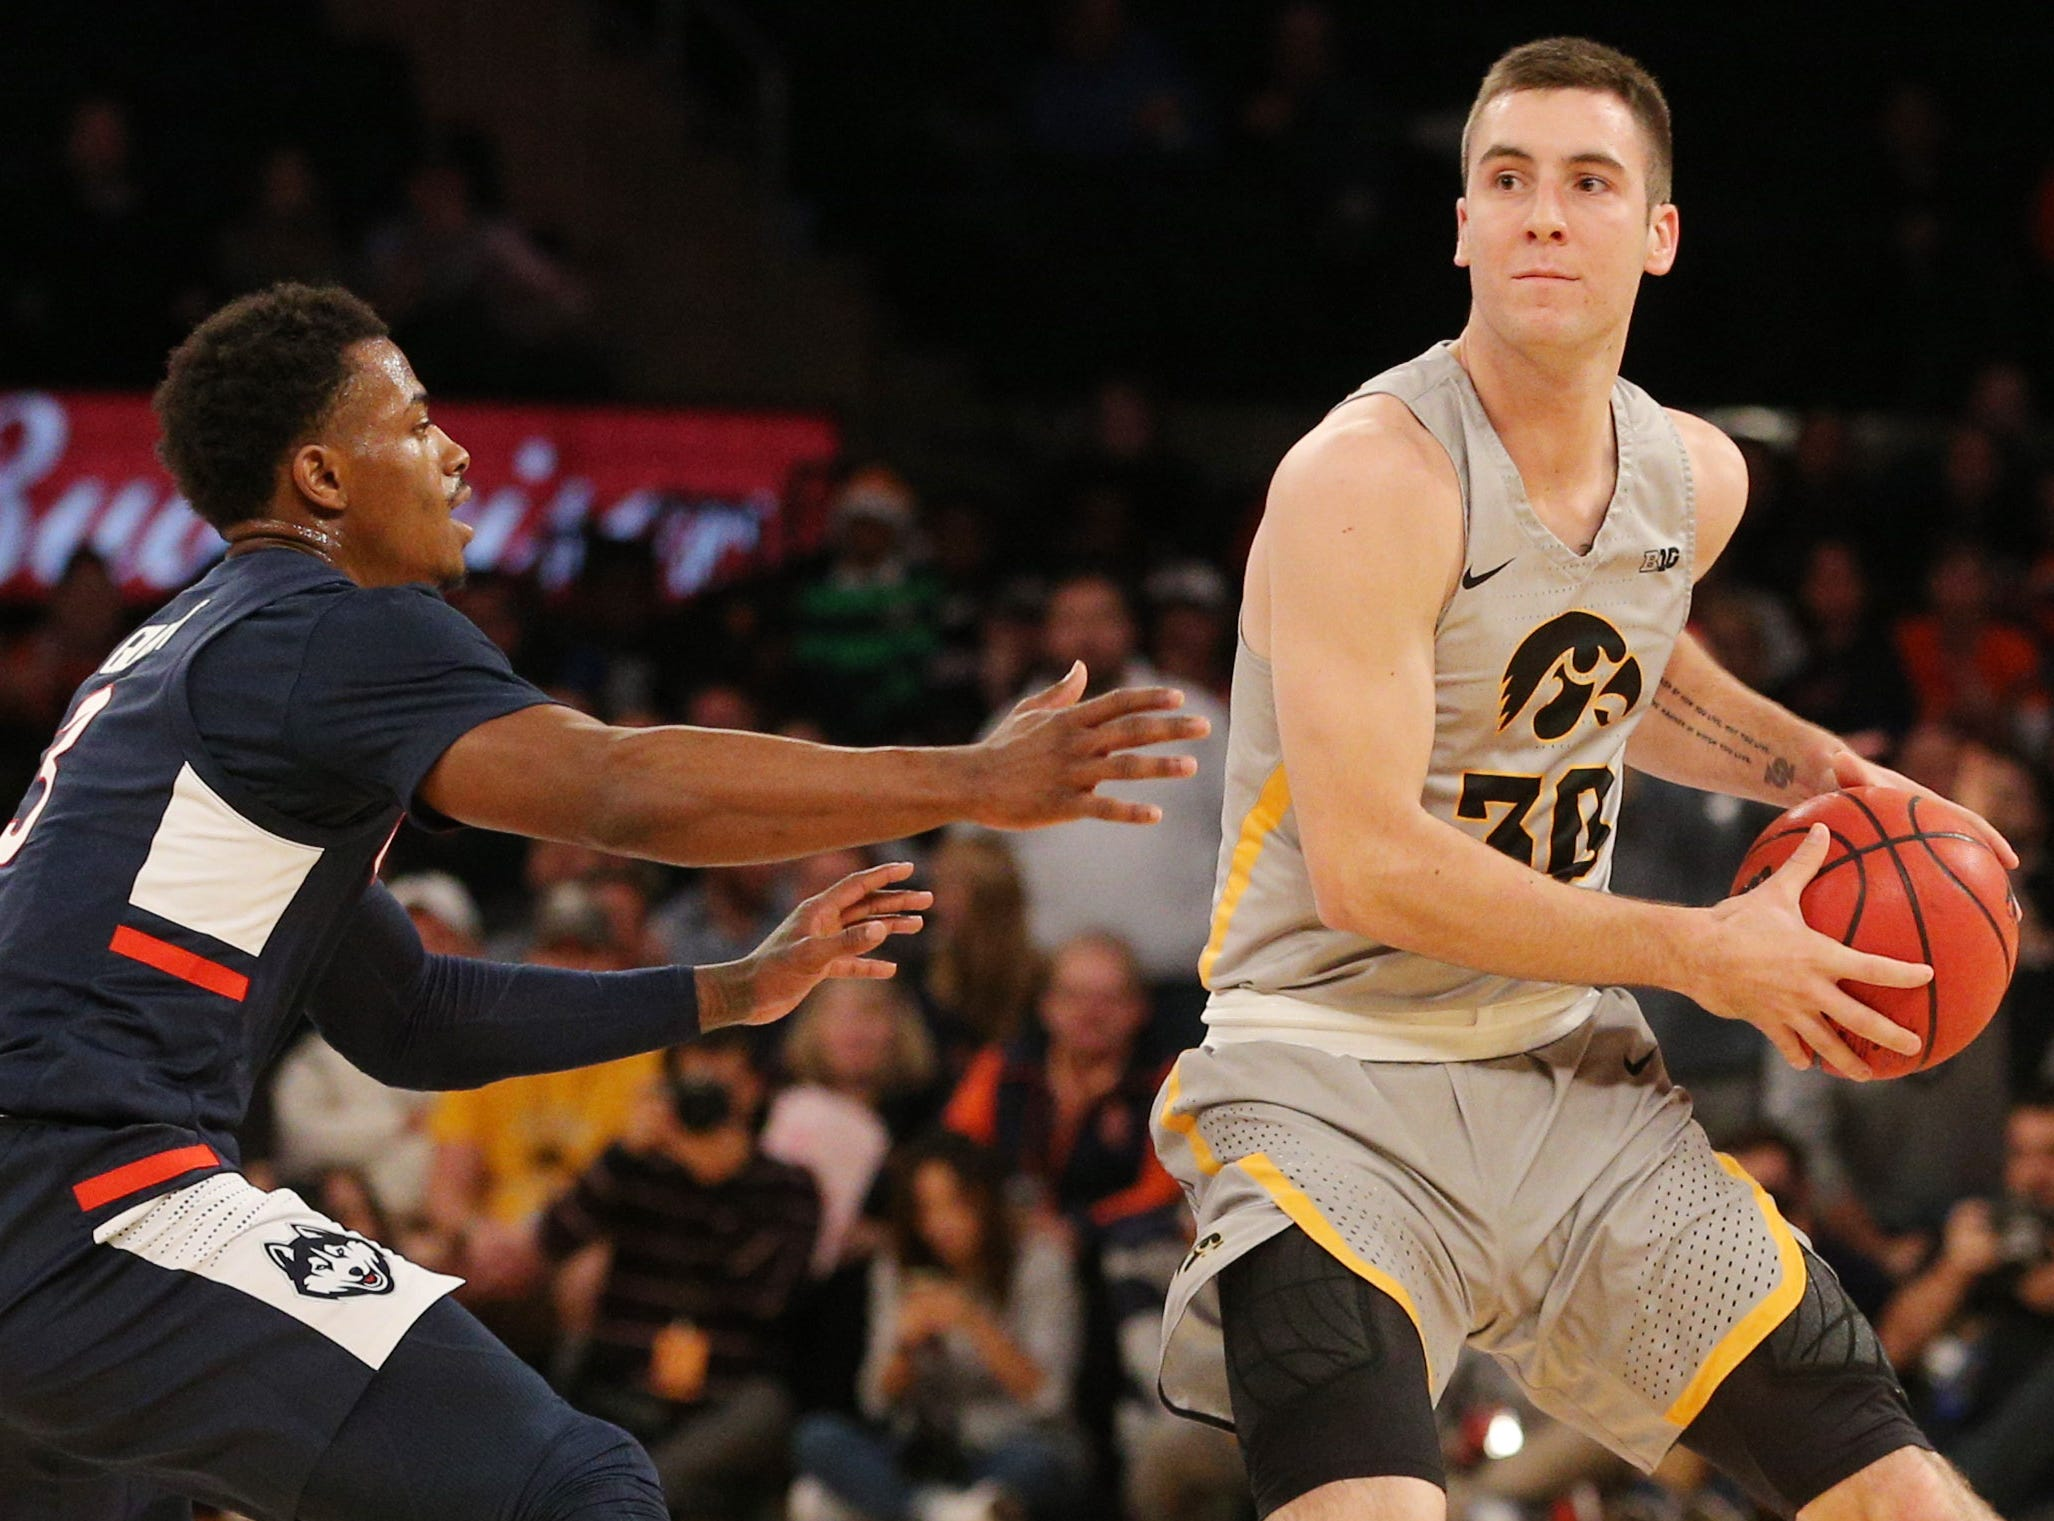 'Everybody who came here stepped up': Behind team effort and togetherness, Iowa takes 2K Classic